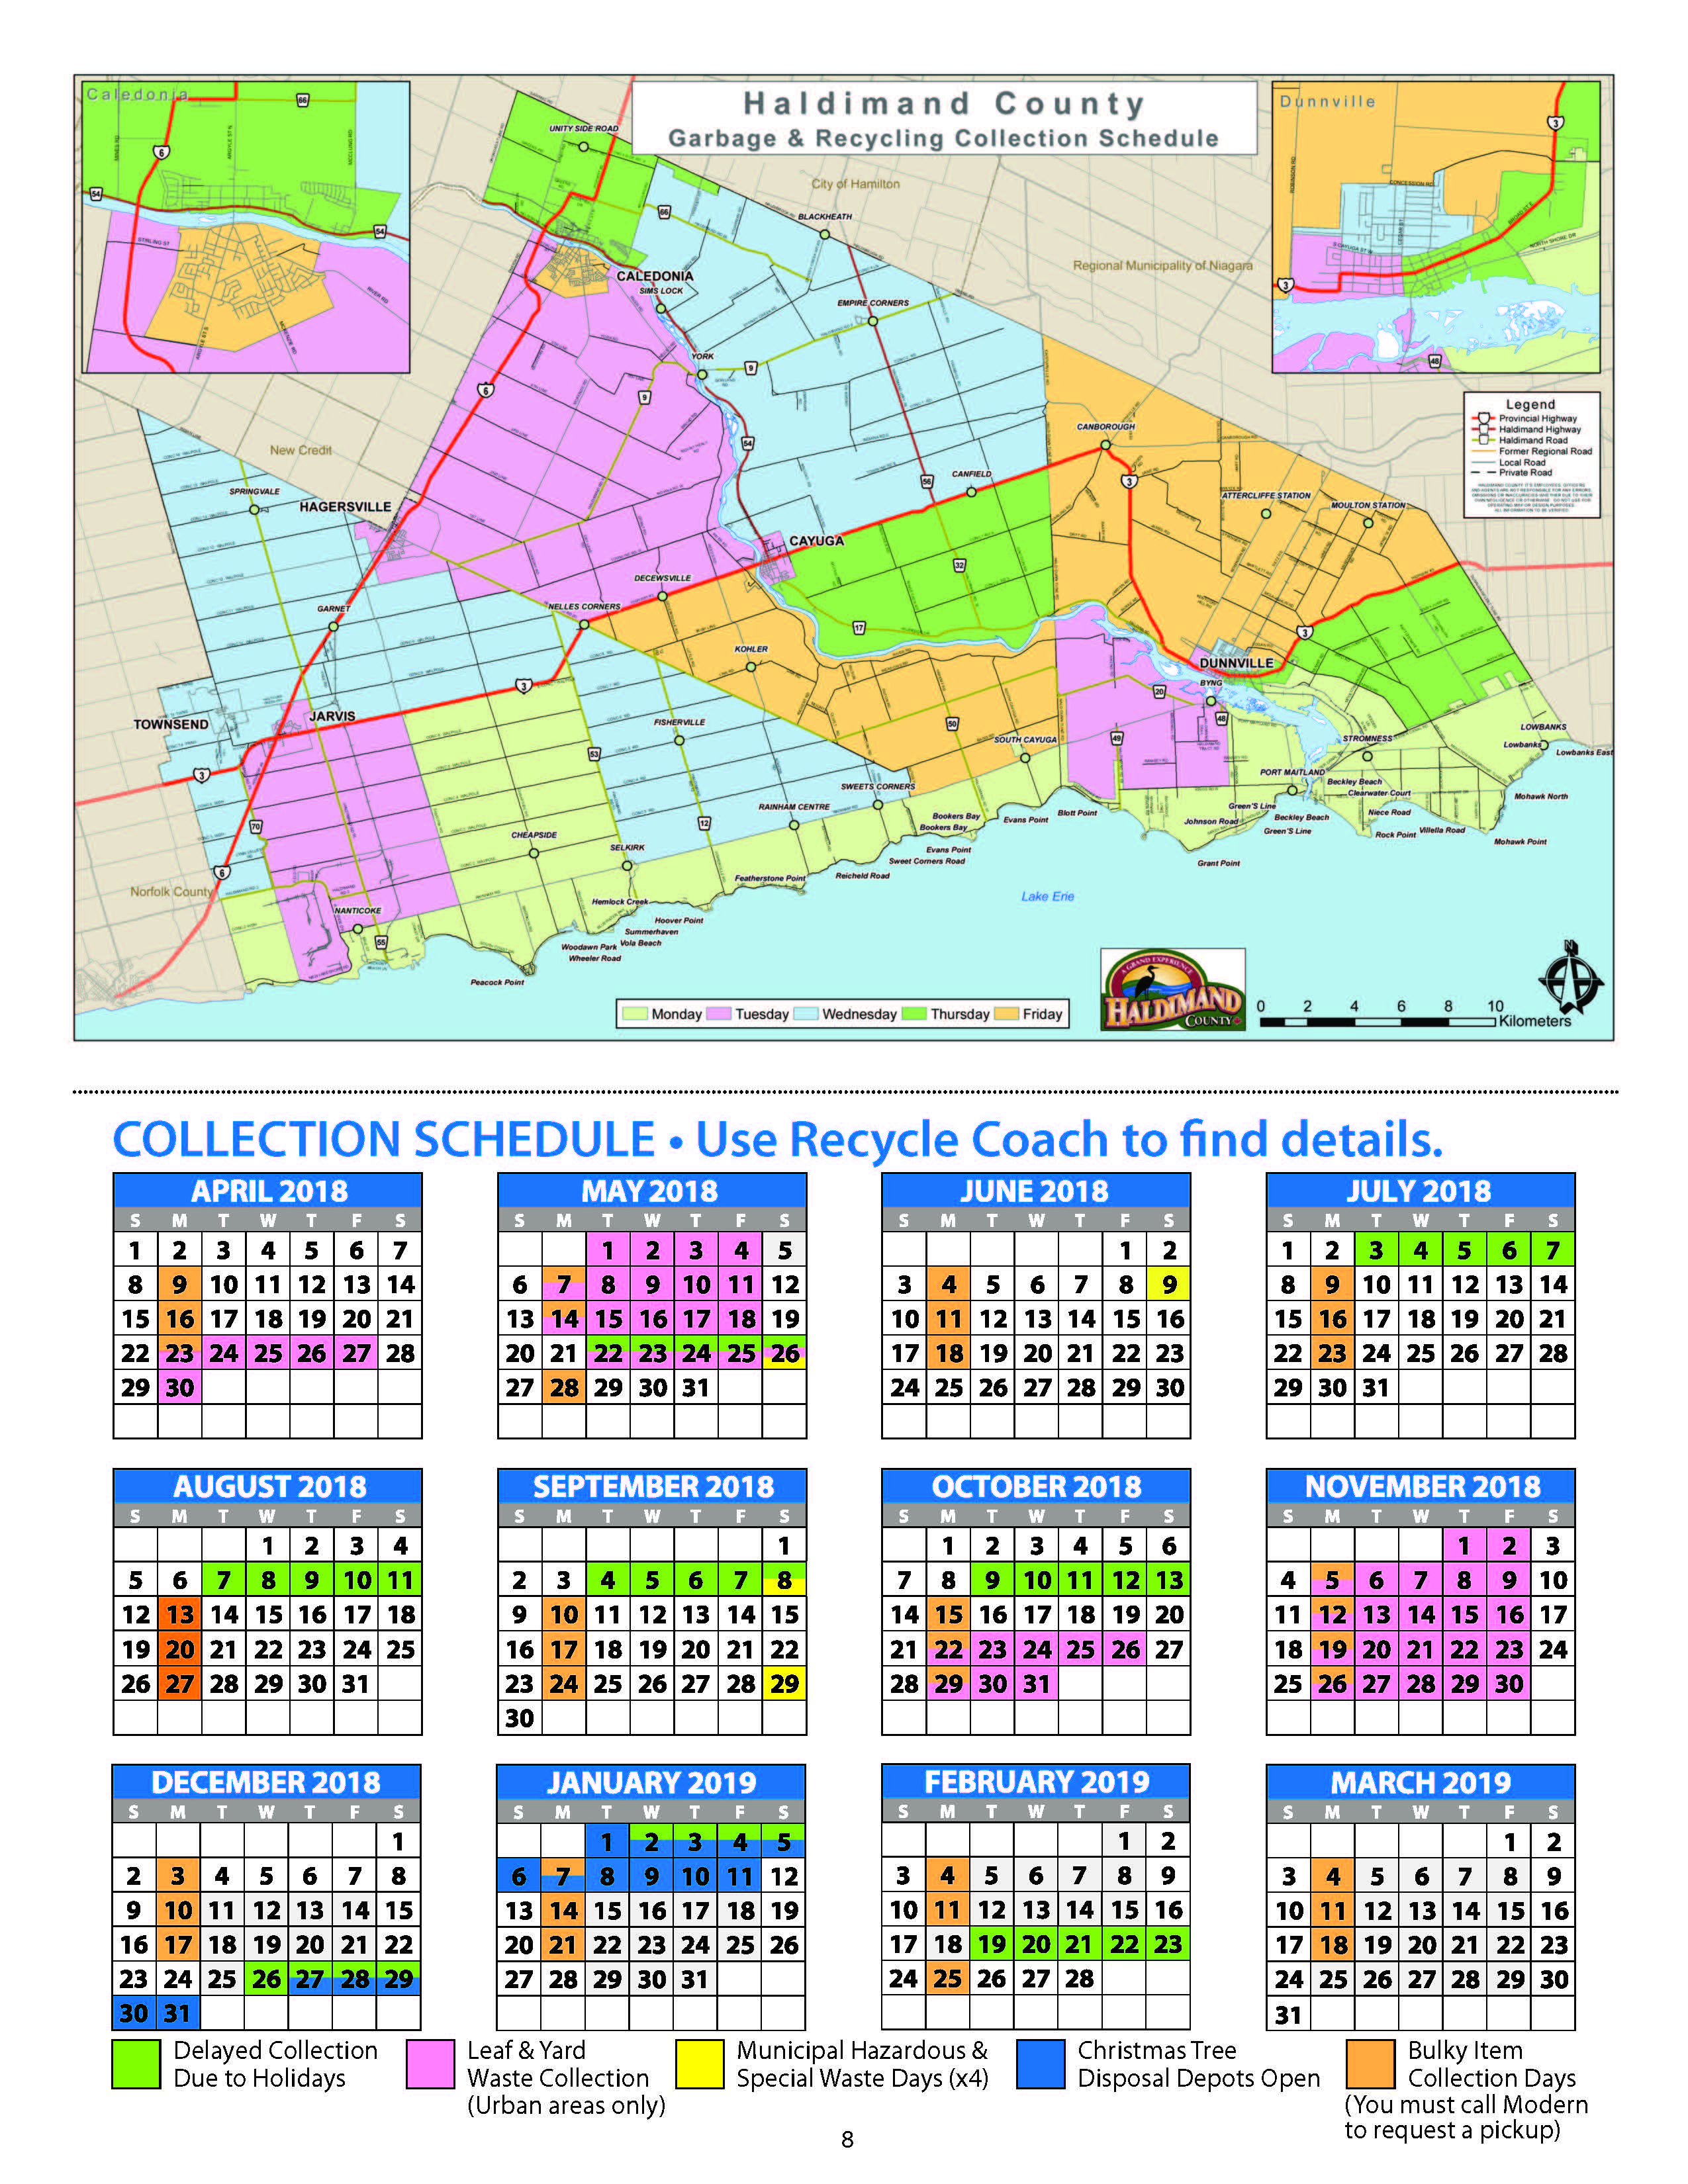 Garbage and recycling collection schedule